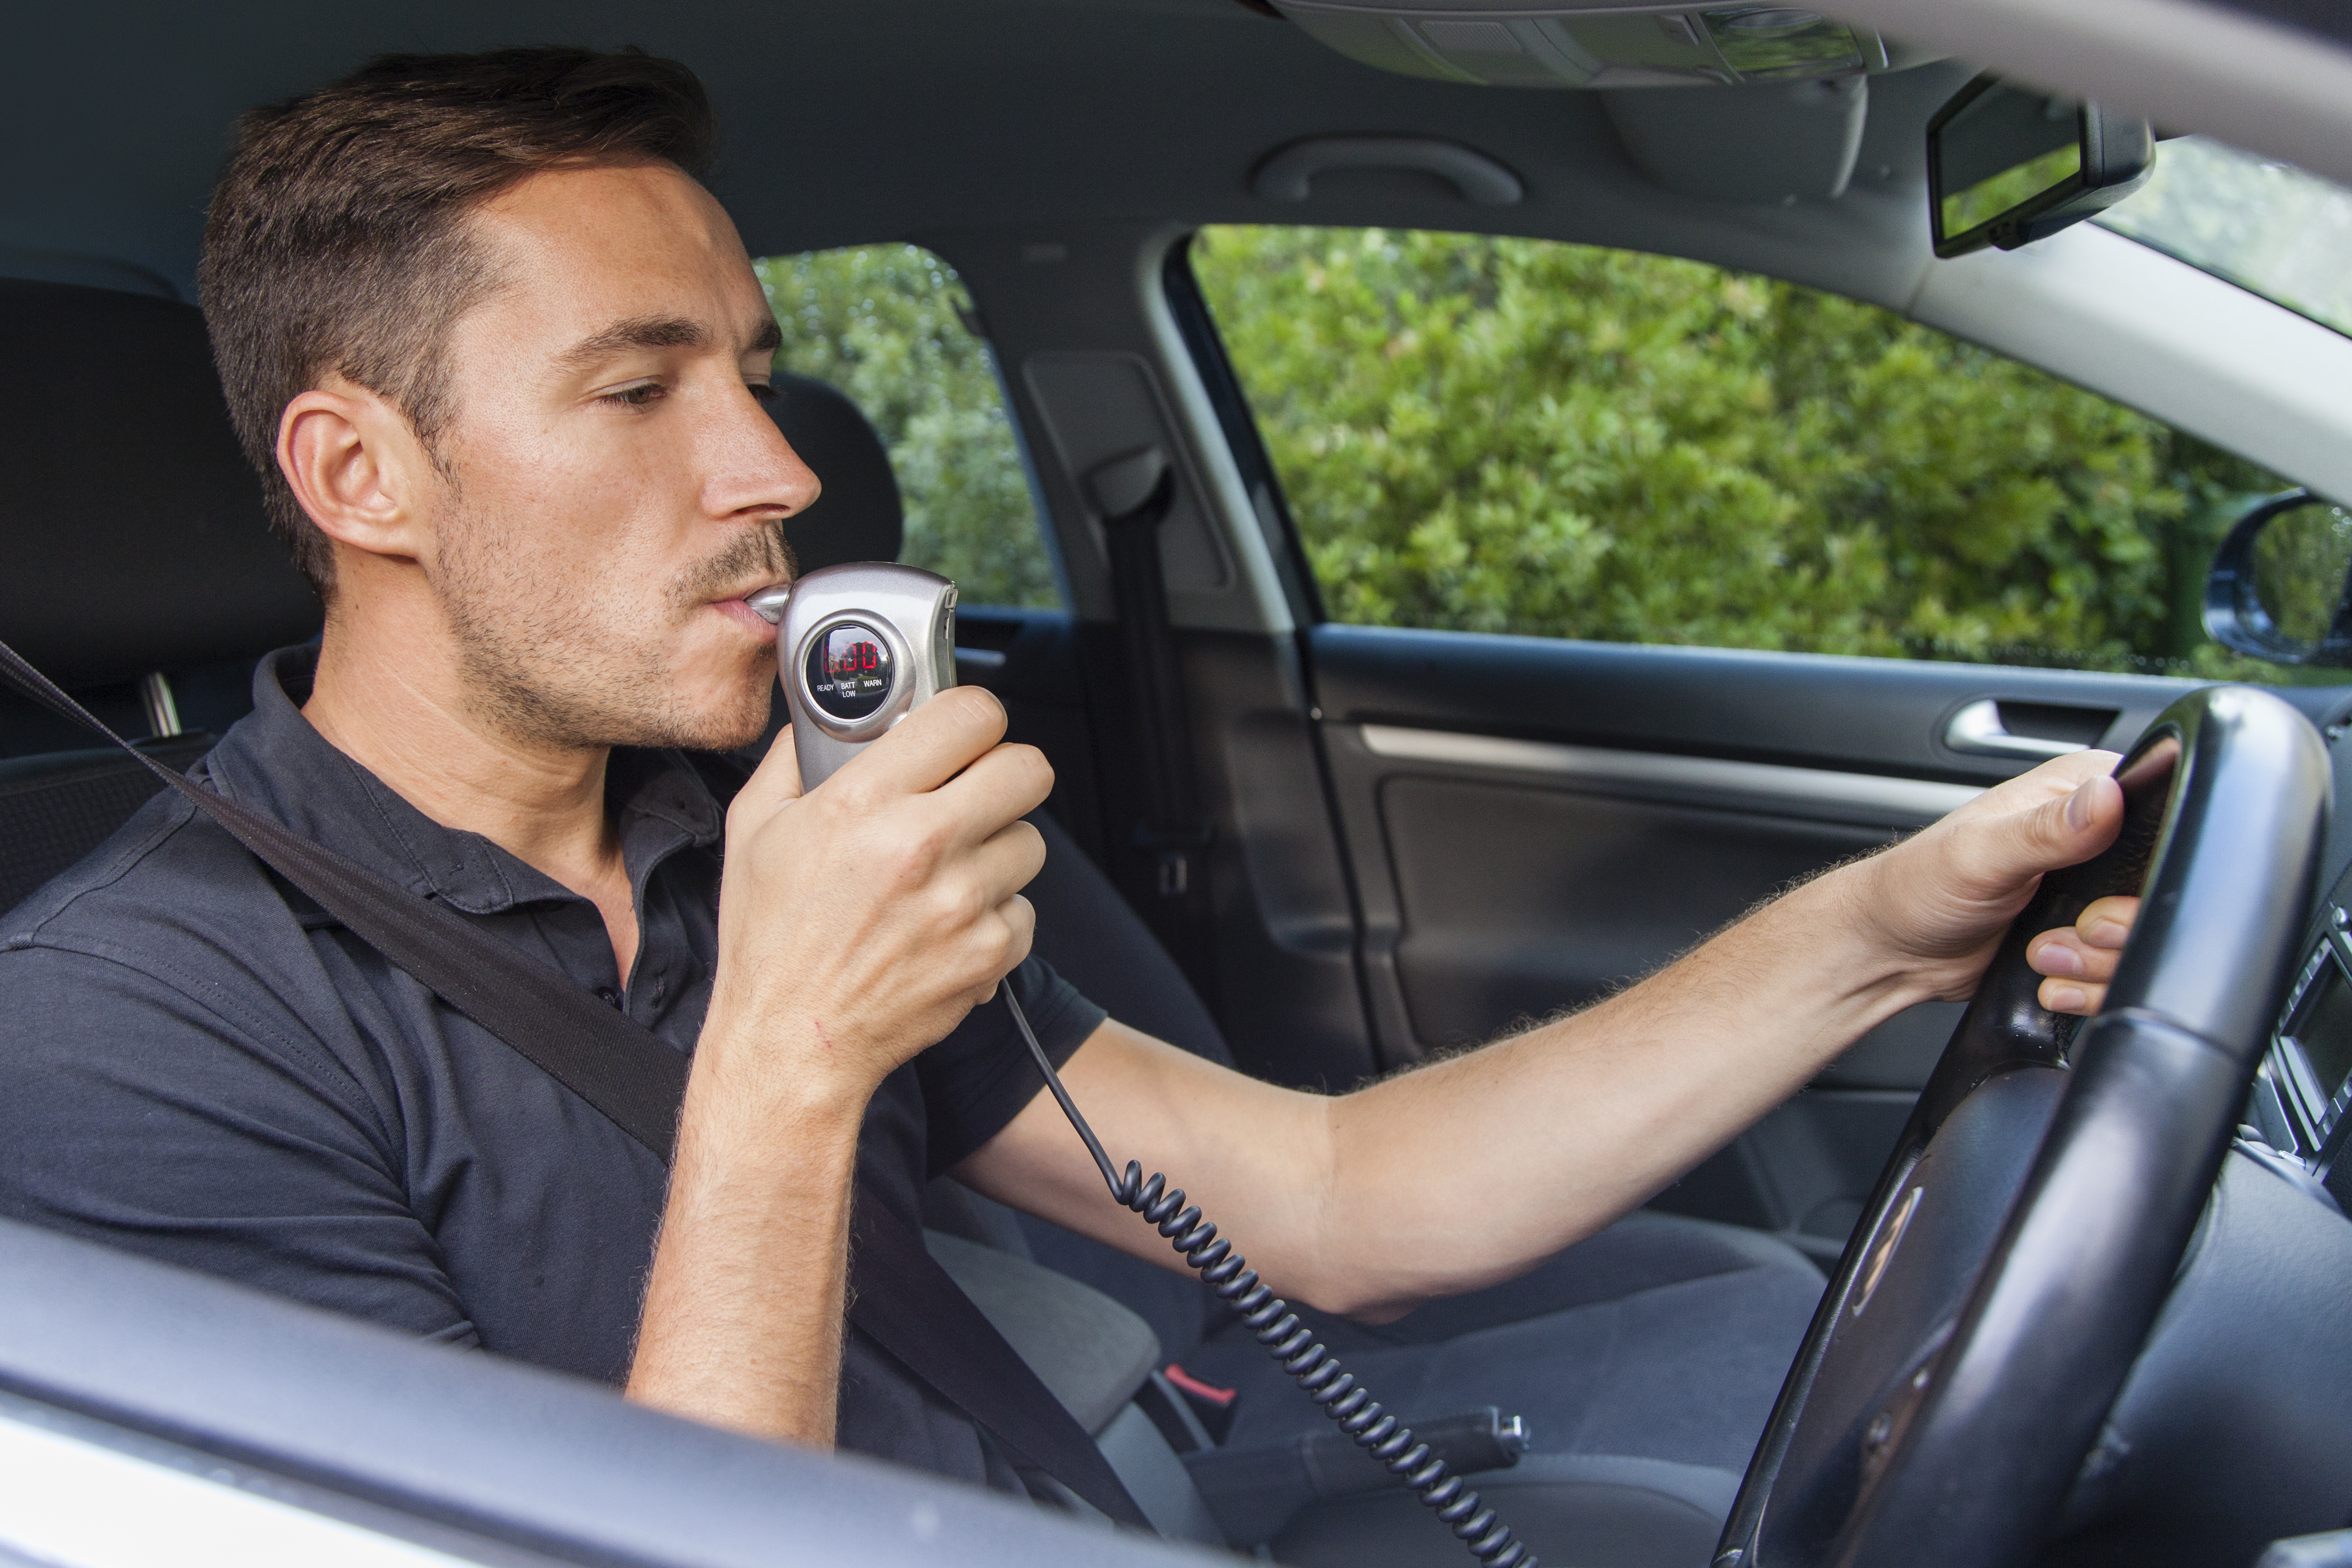 You may need an ignition interlock.